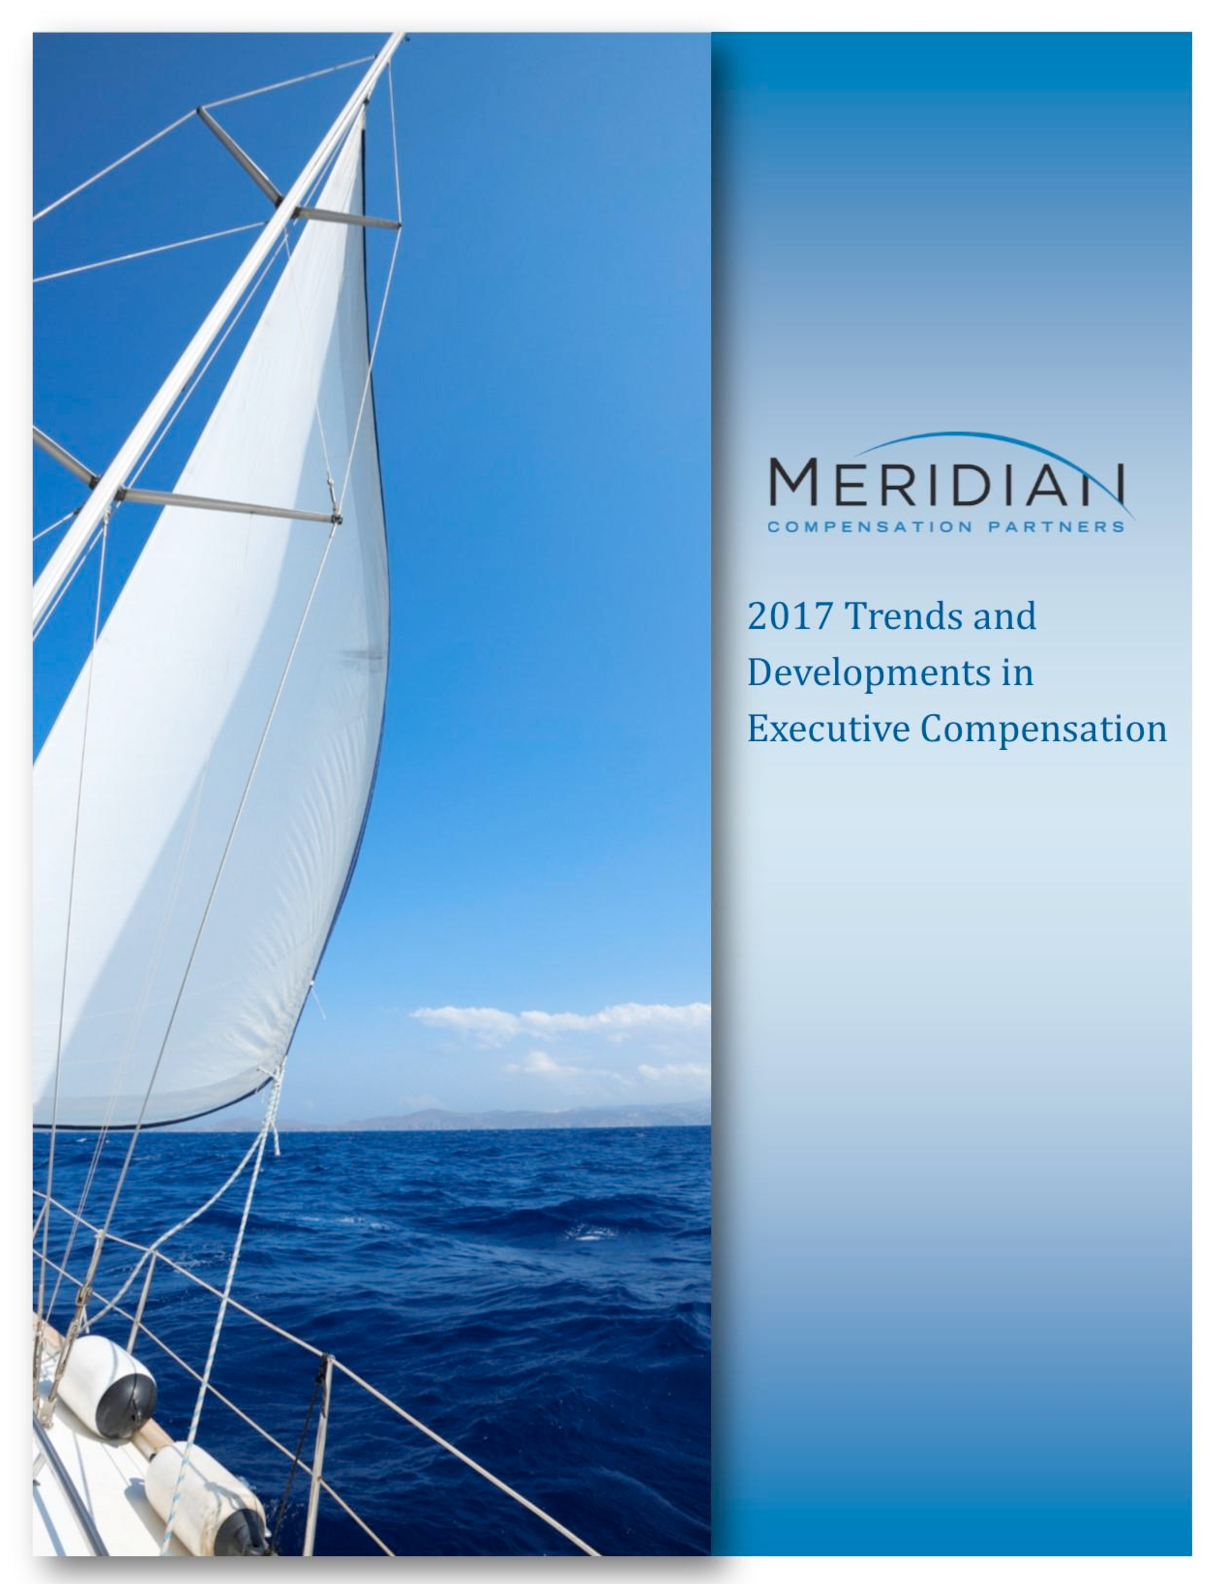 2017 Trends and Developments in Executive Compensation (PDF)